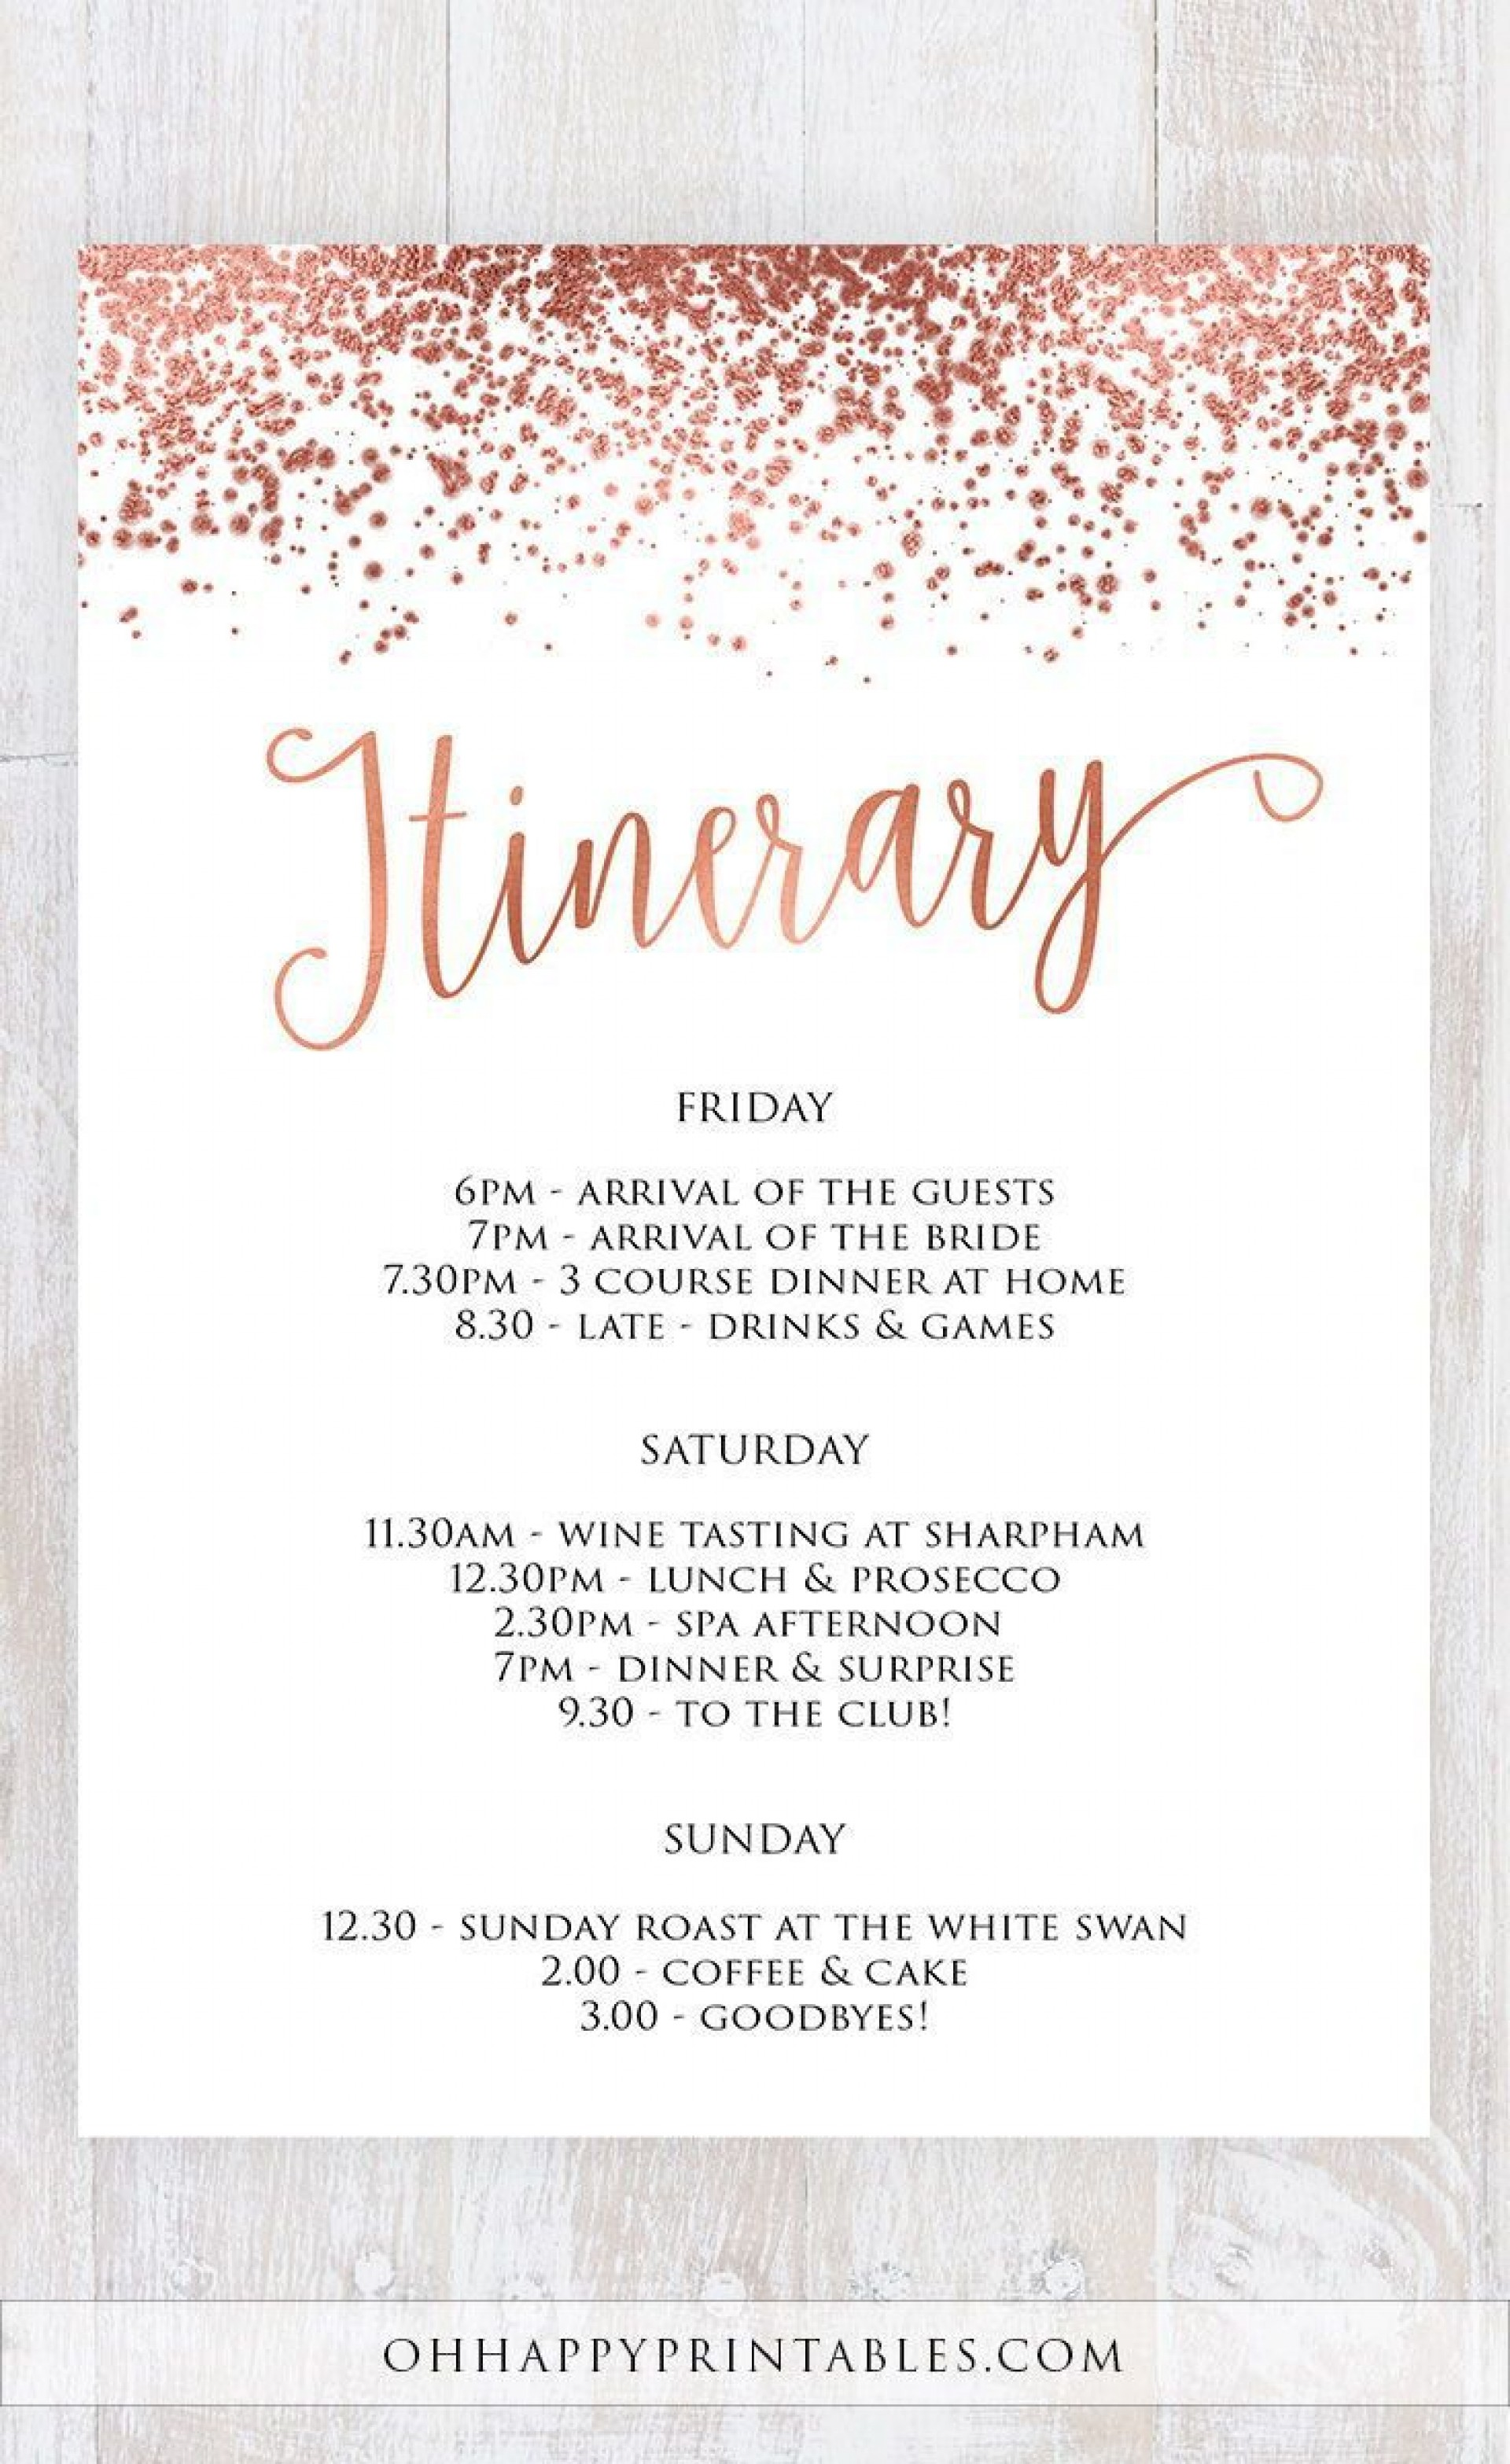 007 Incredible Bachelorette Party Itinerary Template Free Idea  Download1920